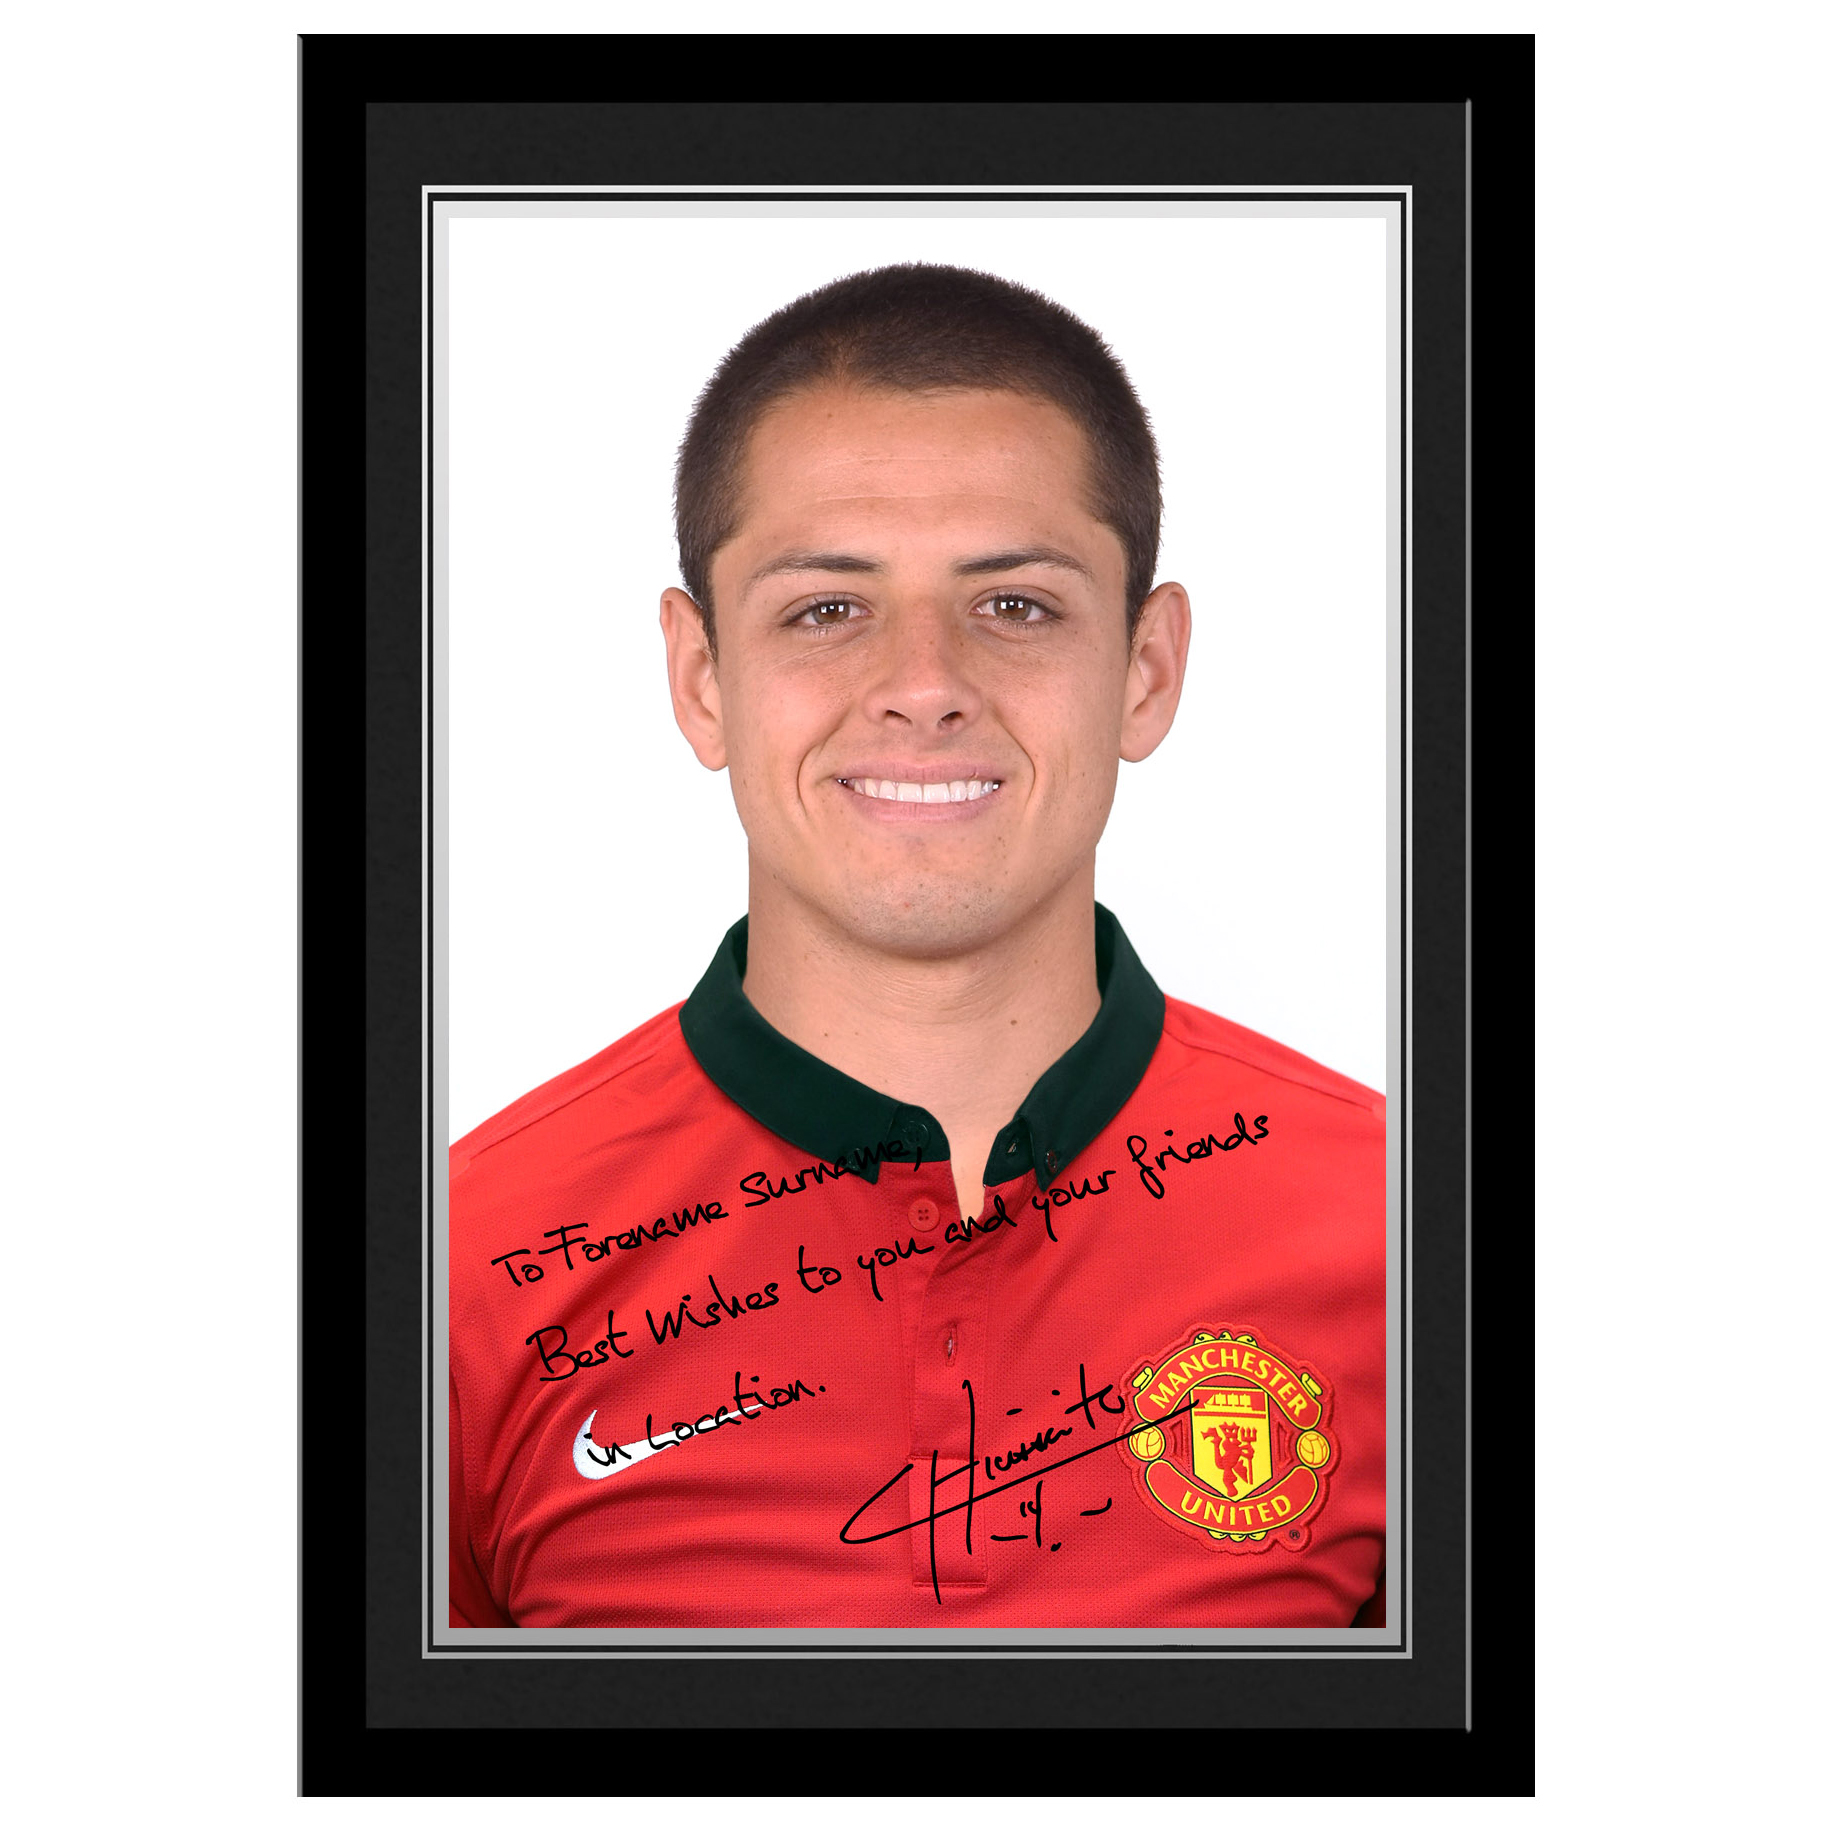 Manchester United Personalised Signature Photo Framed - Chicharito